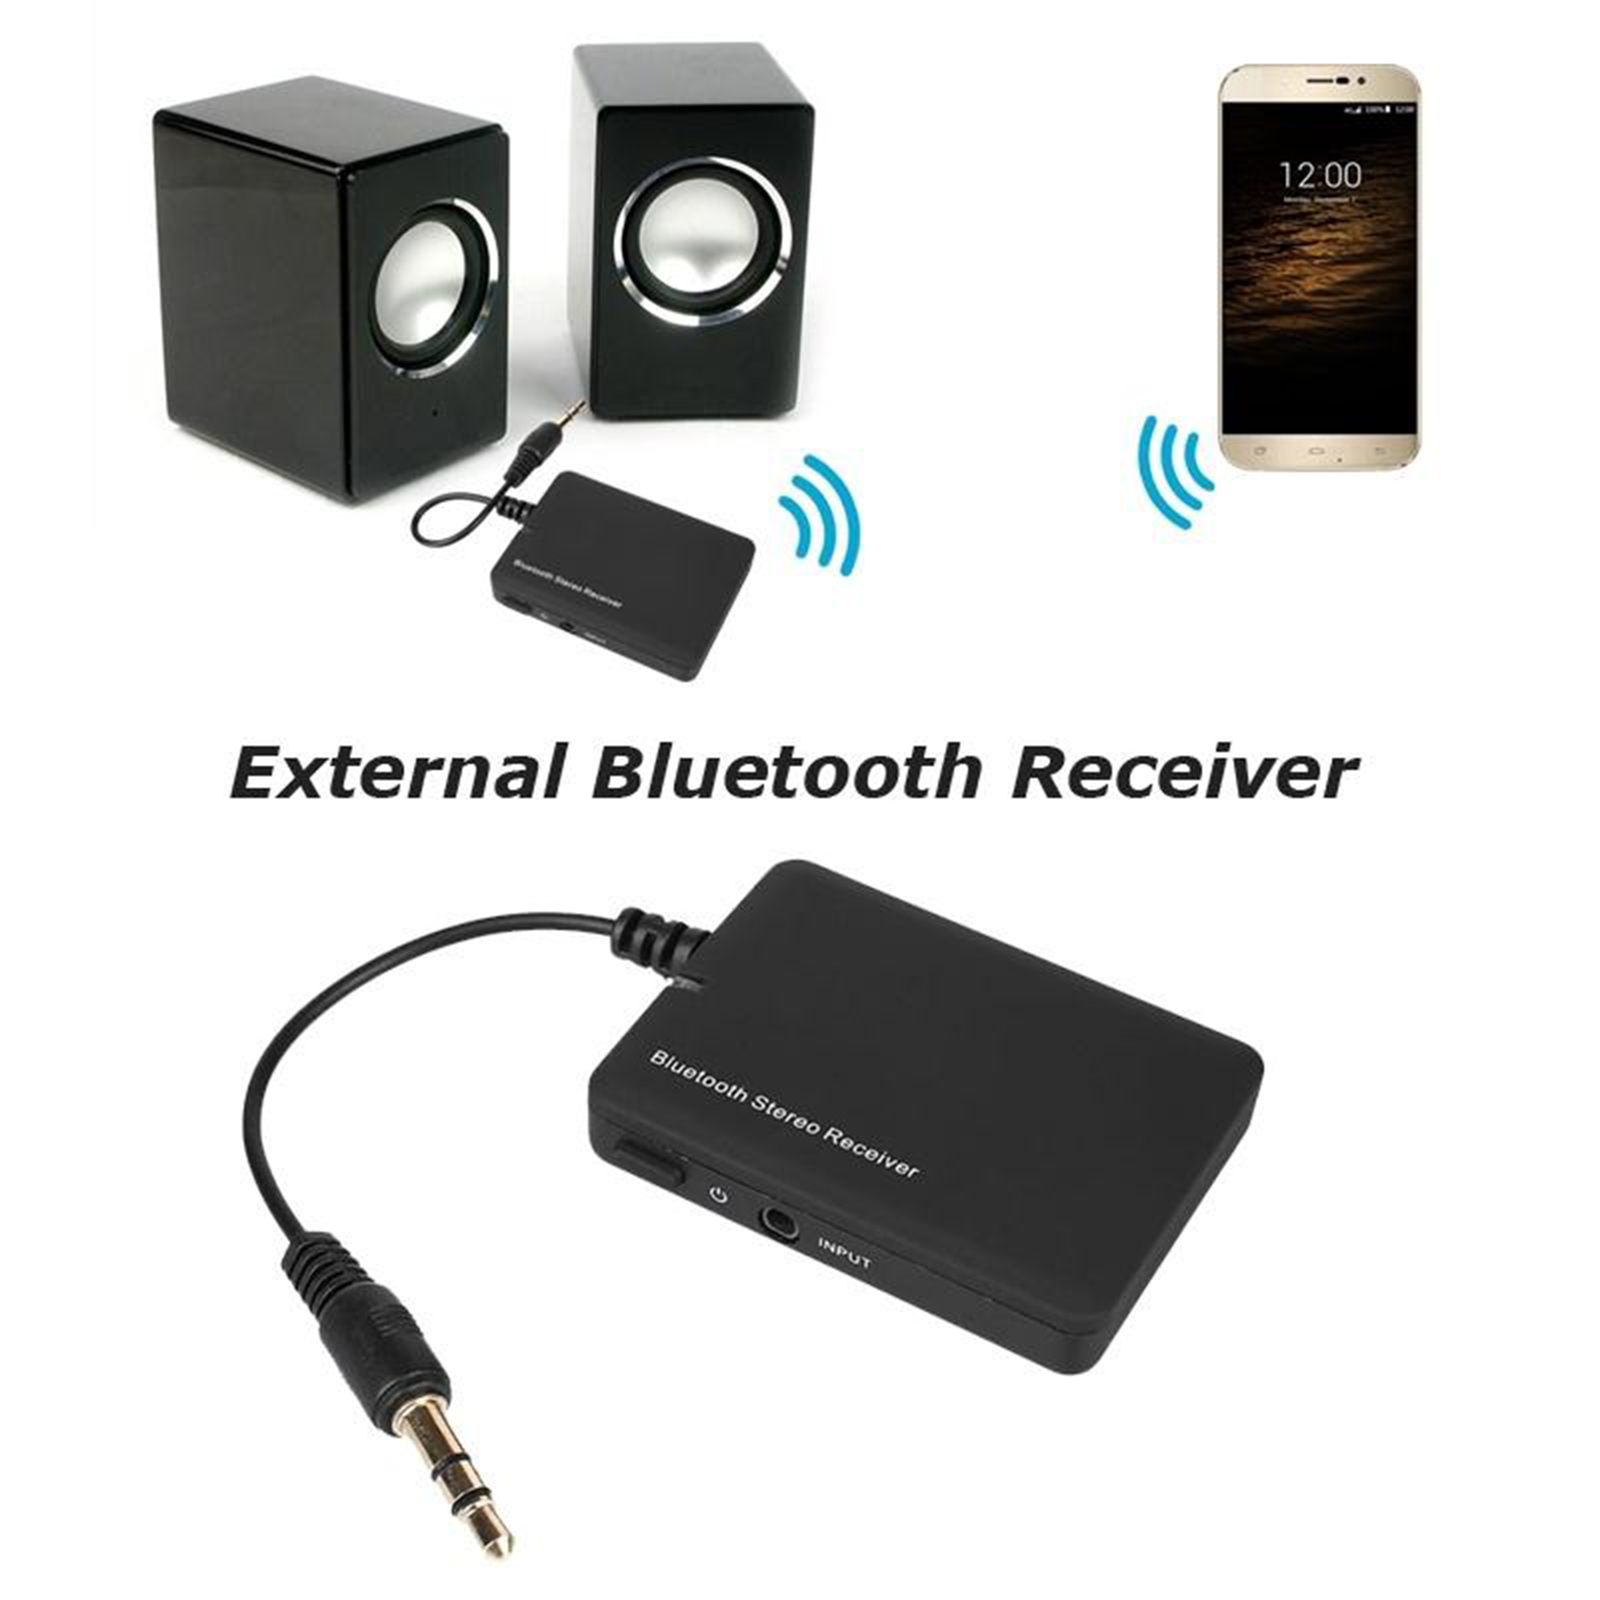 Wireless Bluetooth Audio Stereo Music Receiver 3.5mm Car Aux Adapter A2DP 702706037570